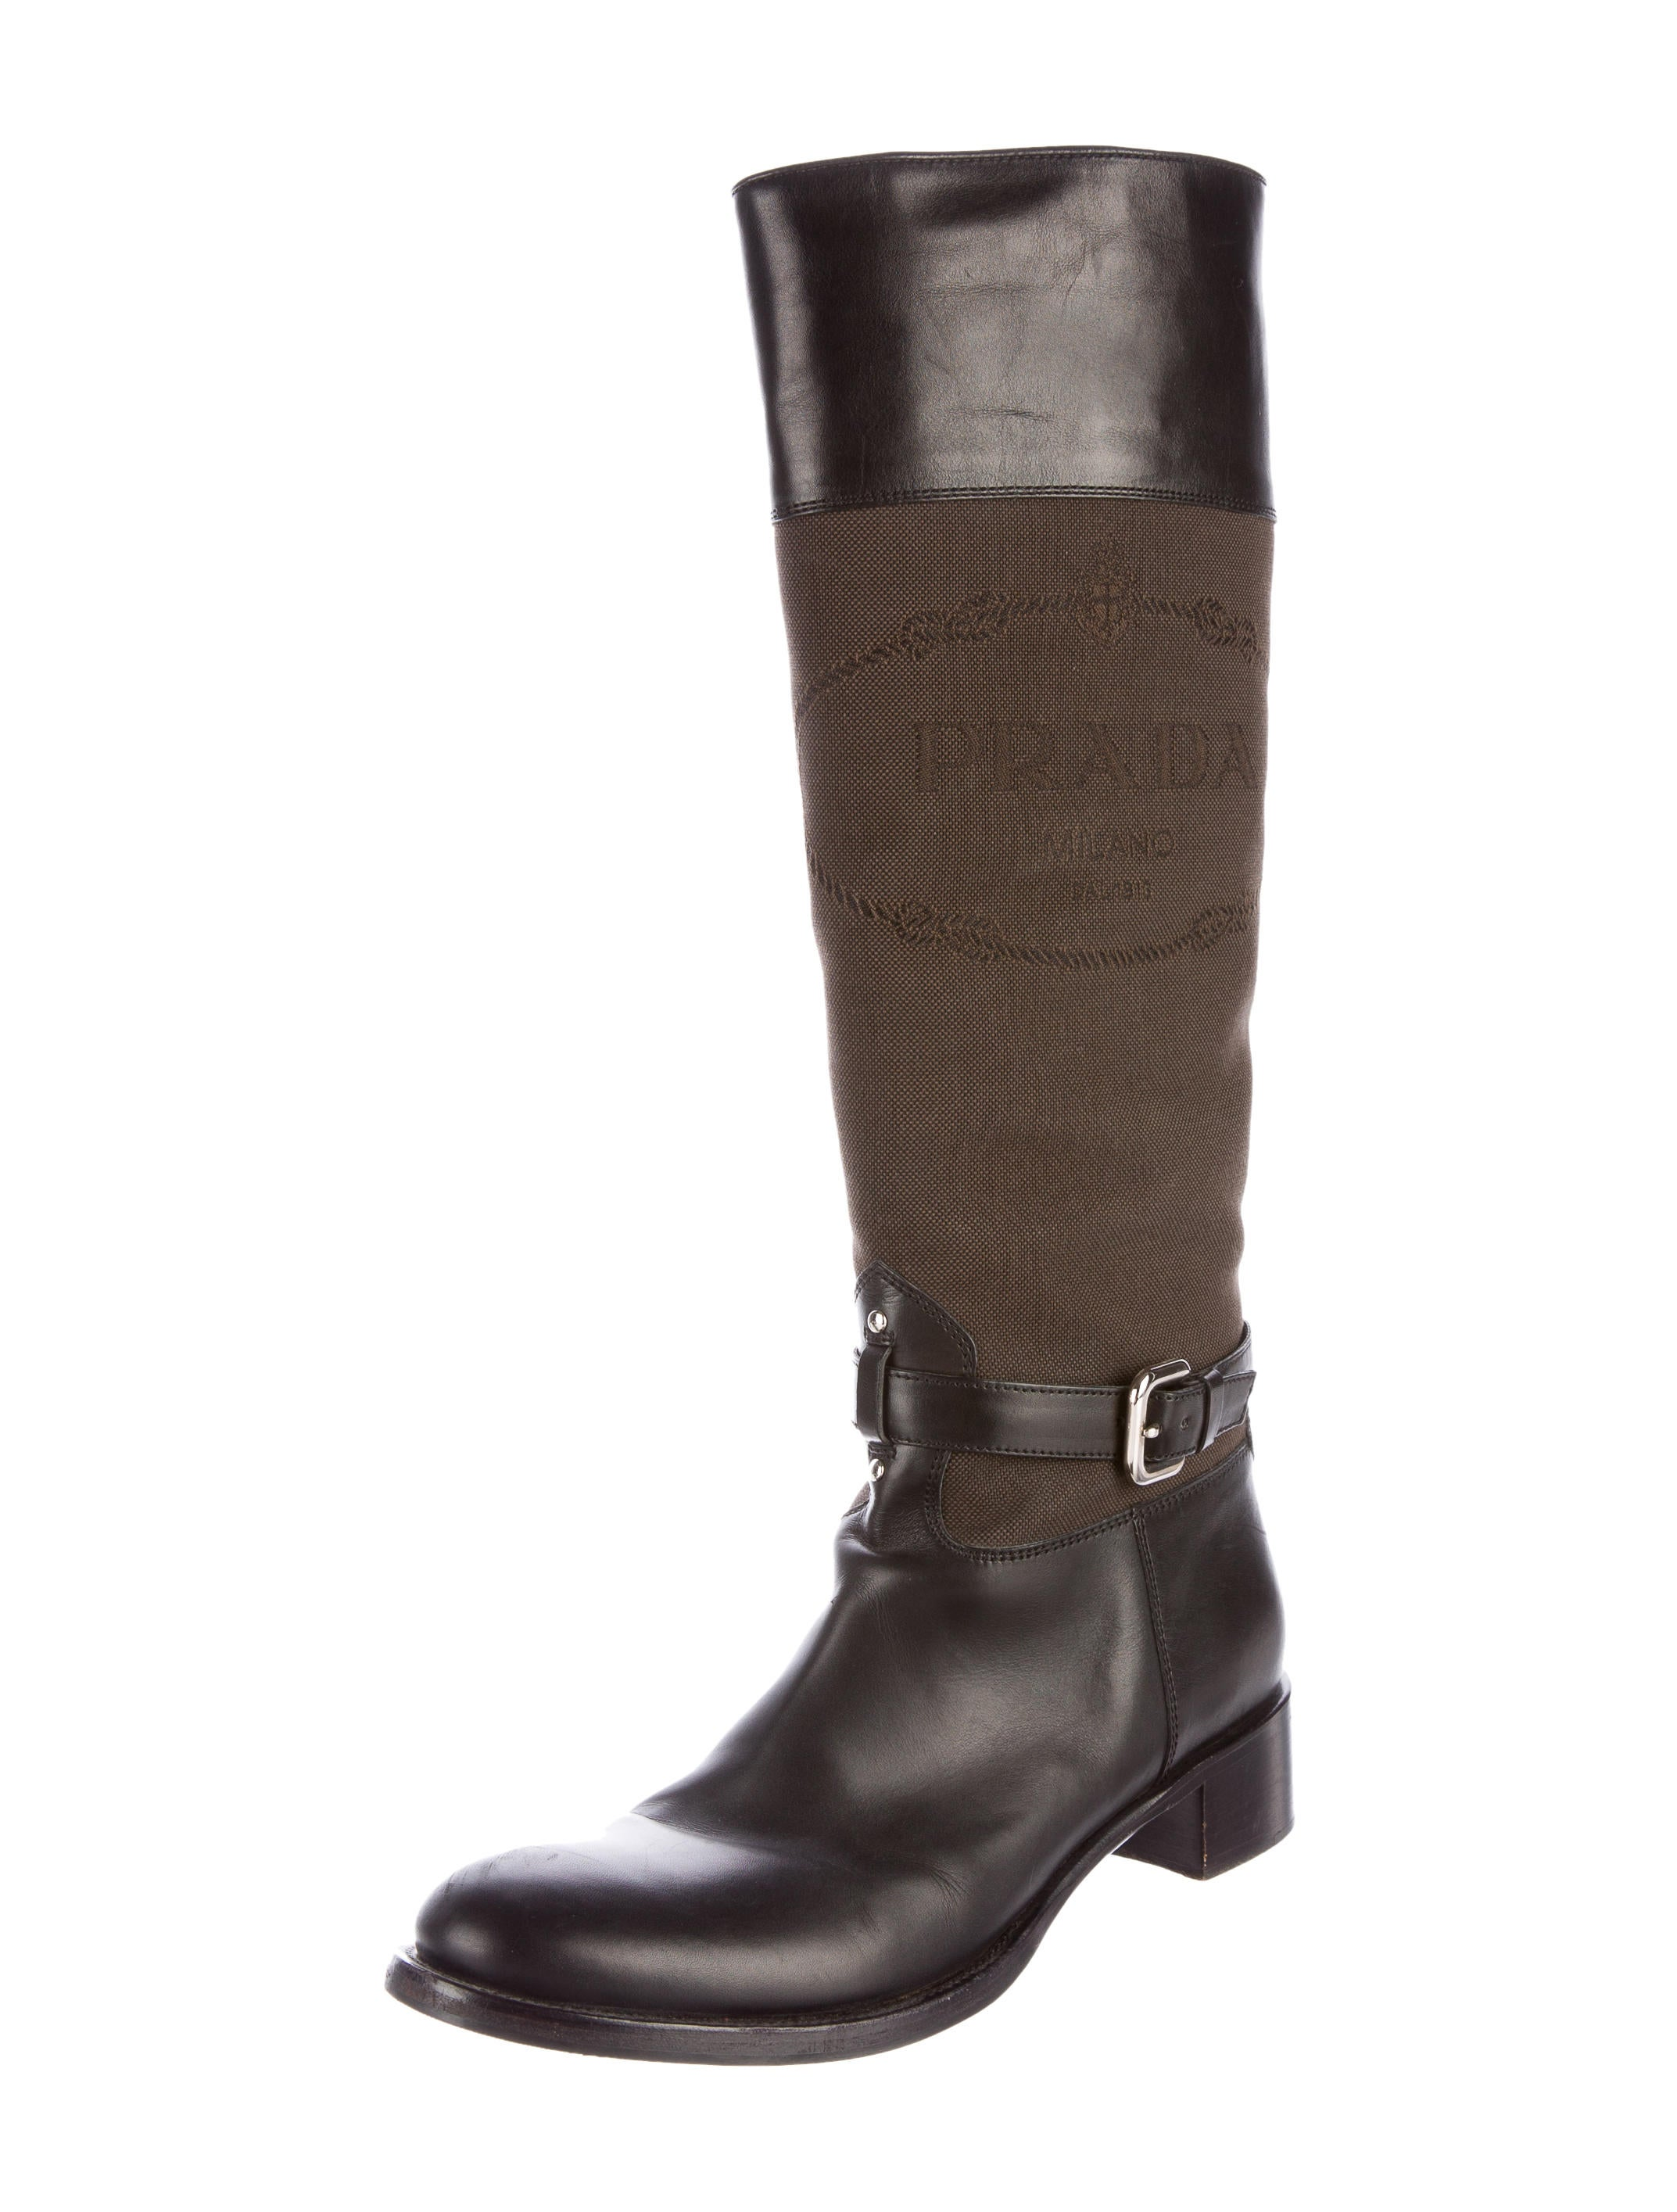 prada canvas knee high boots shoes pra134588 the